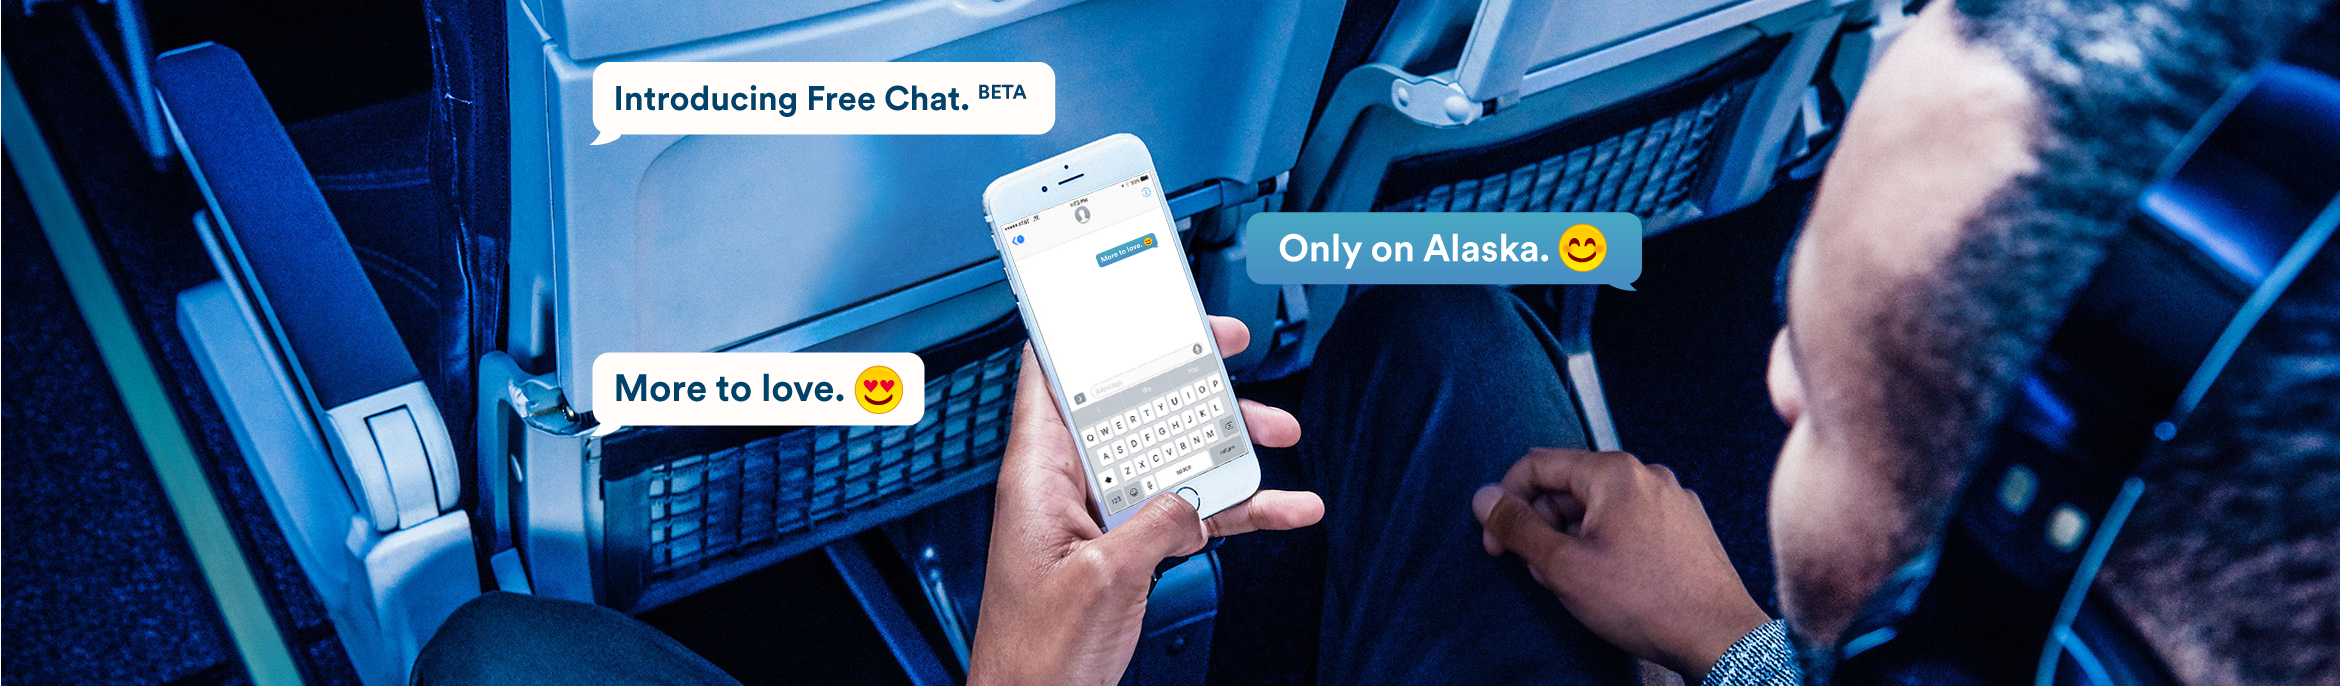 Alaska Airlines Inflight Entertainment Changes 2017: Free Texting and Movies